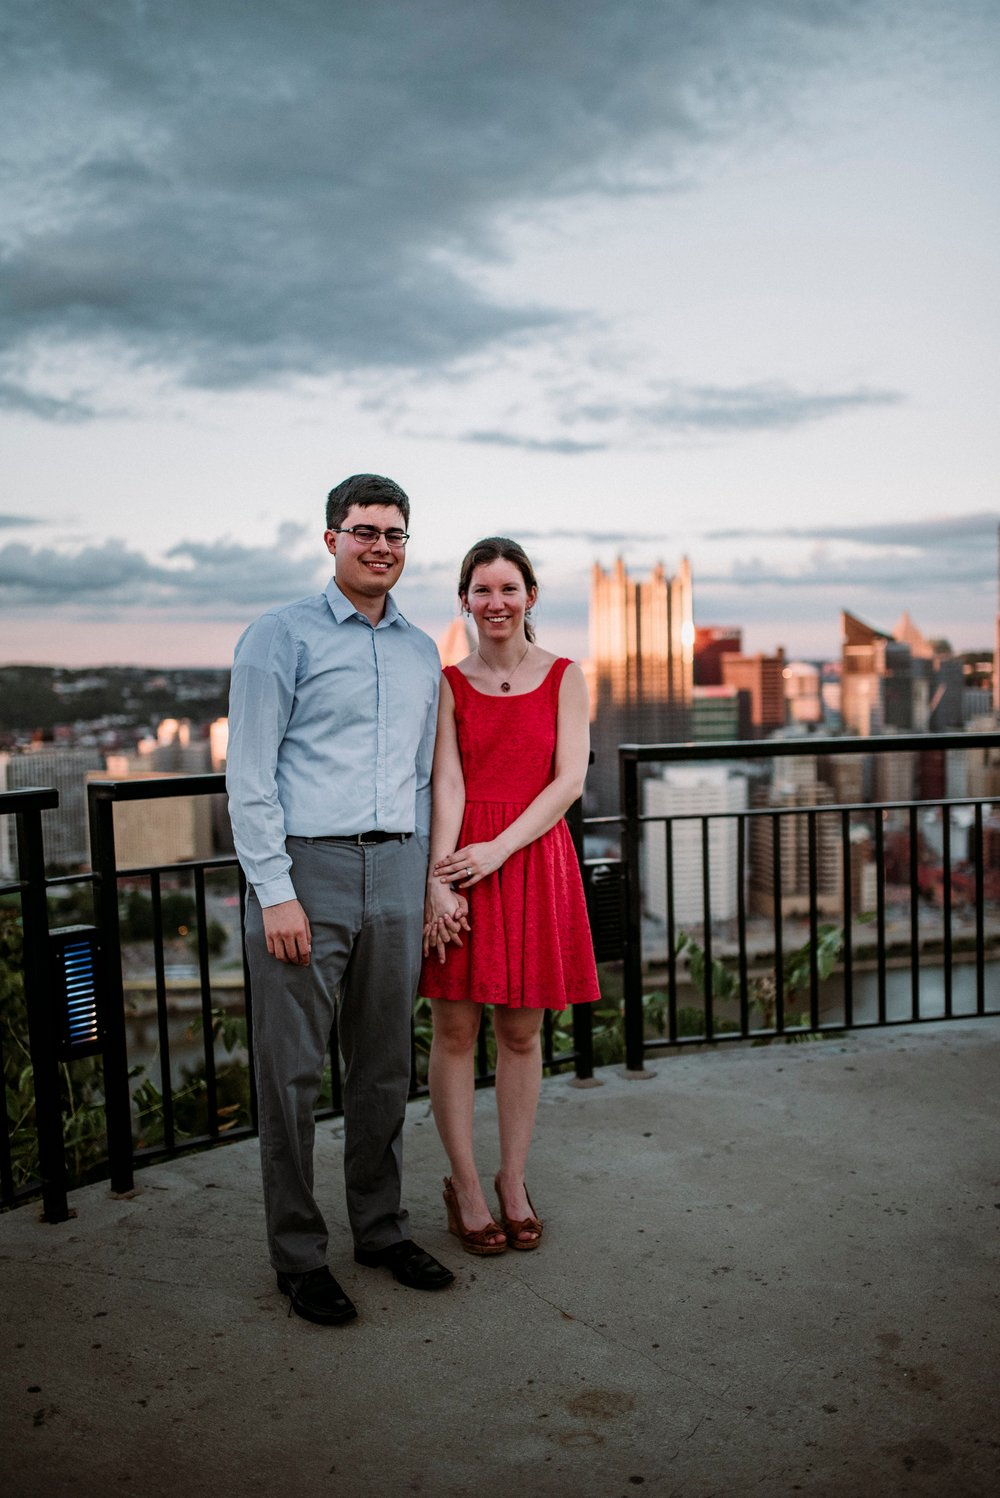 0267Jorge-Clara-Proposal-Pittsburgh_Proposal-Pittsburgh-Constructed-Adventures-Sandrachile.jpg